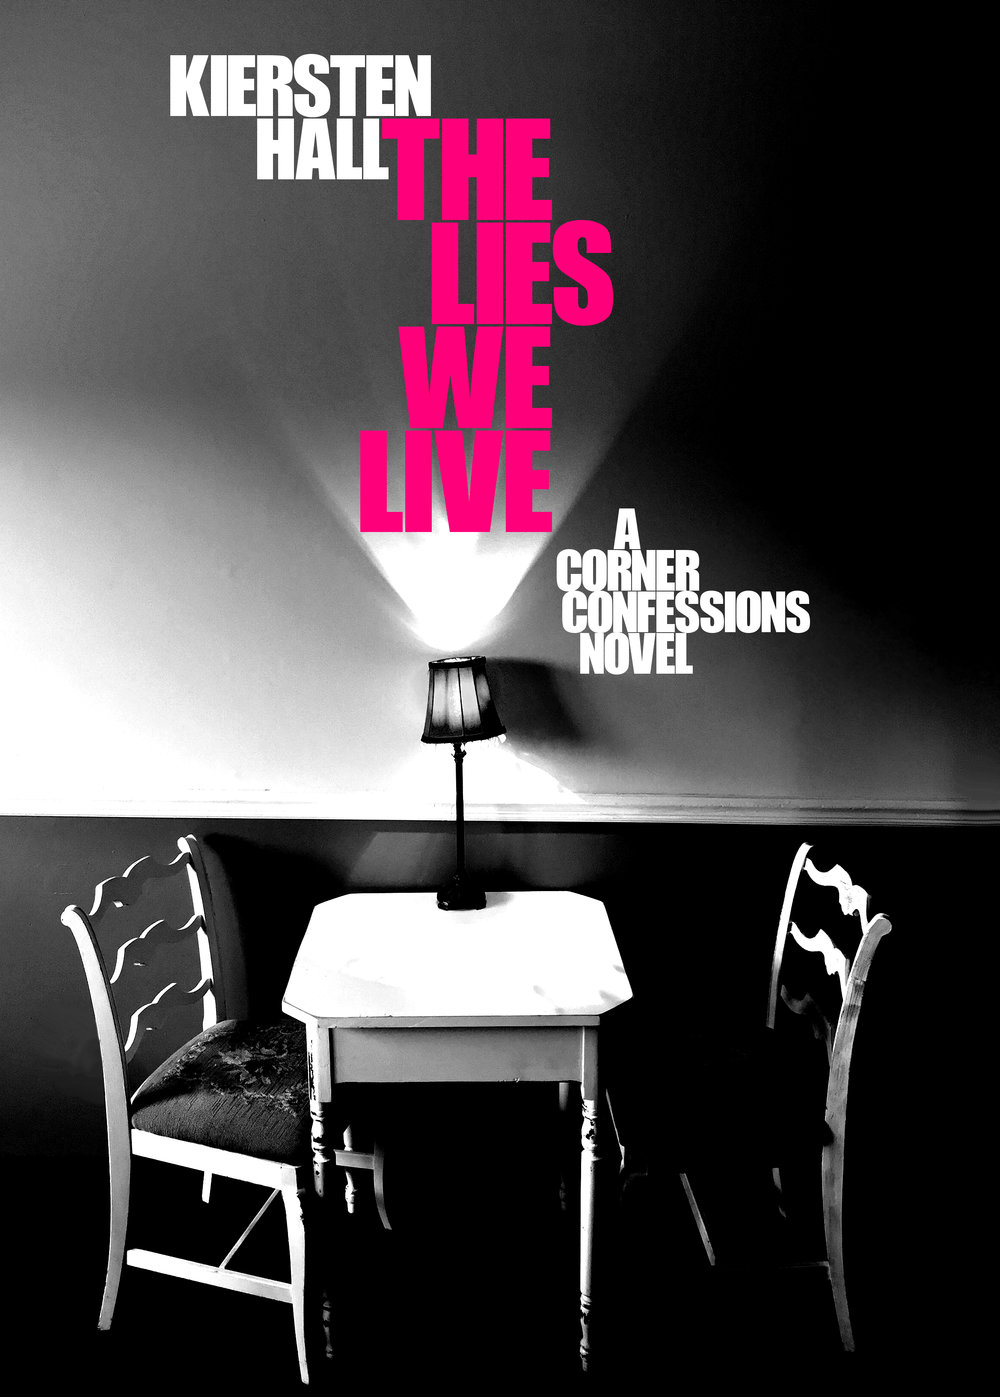 The Lies We Live - A Corner Confessions Novel  full-cover (2017)